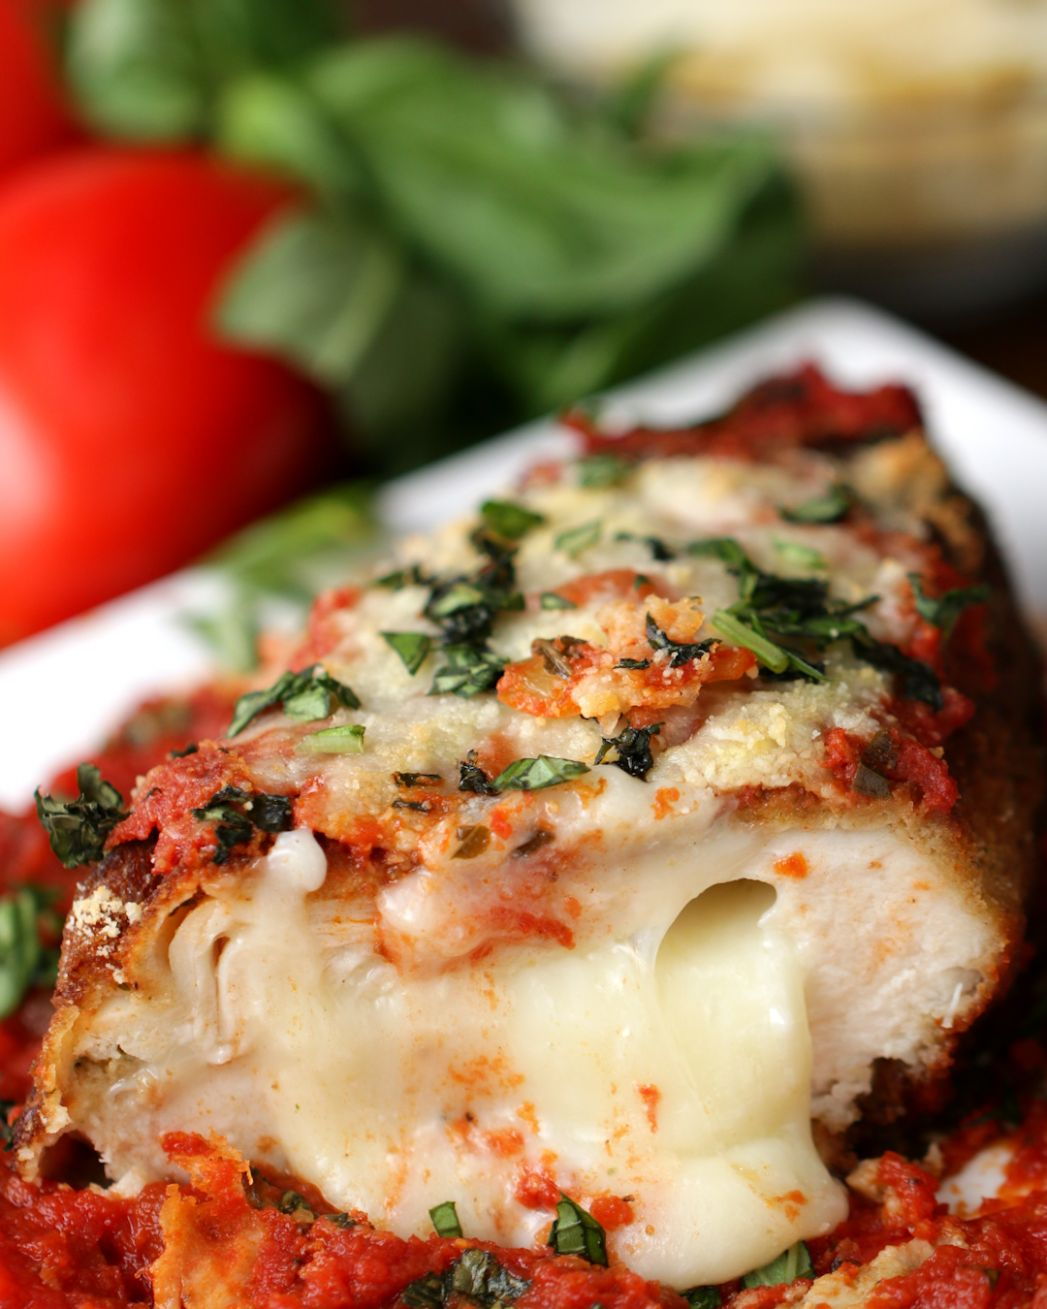 Stuffed Chicken Parmesan Recipe by Tasty - Recipes Chicken Breast Parmesan Cheese